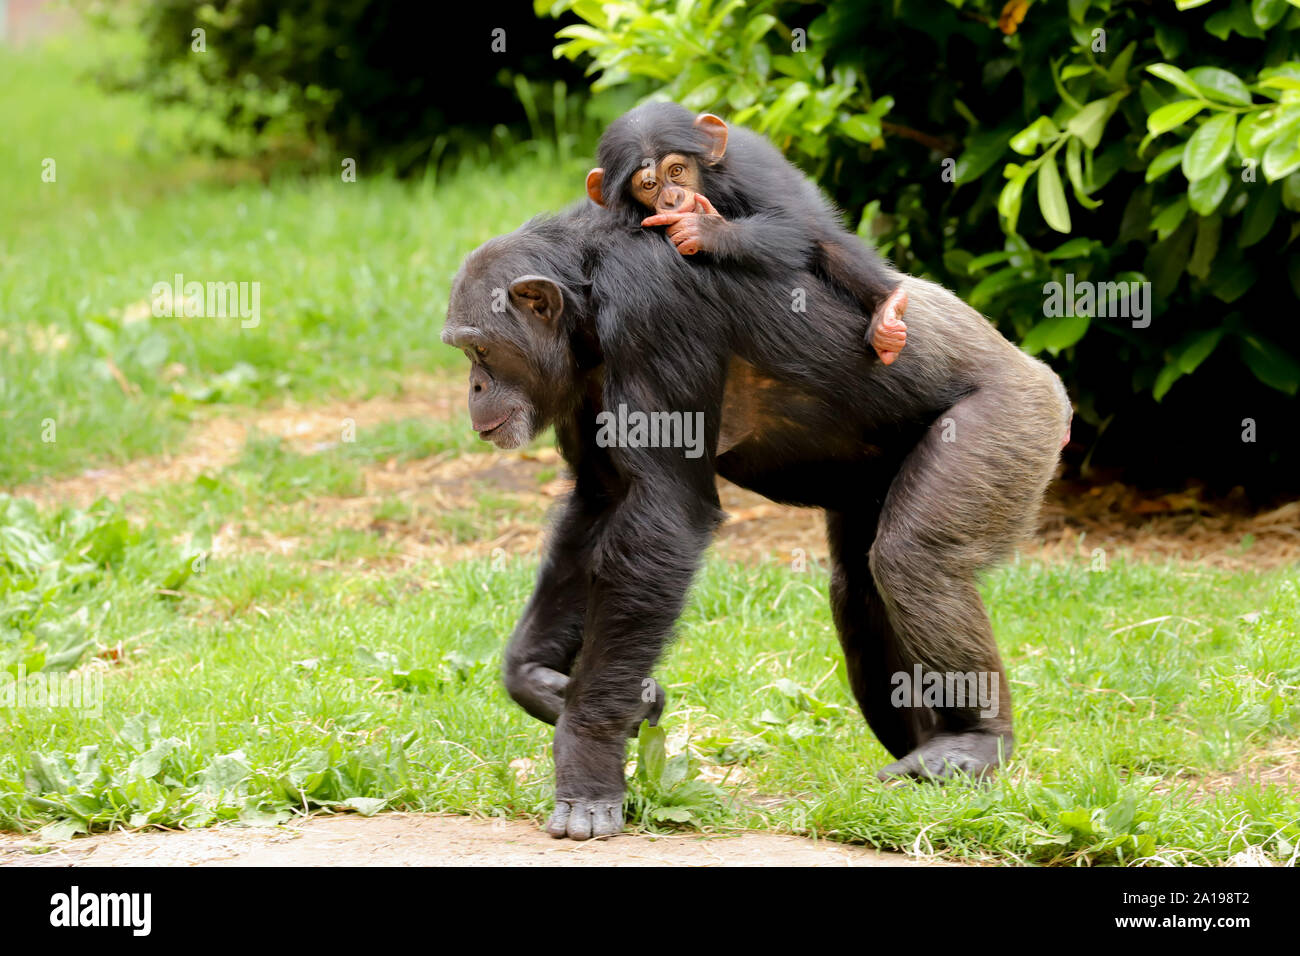 A mother chimpanzee walking along with a cute baby riding on its back sucking its thumb Stock Photo